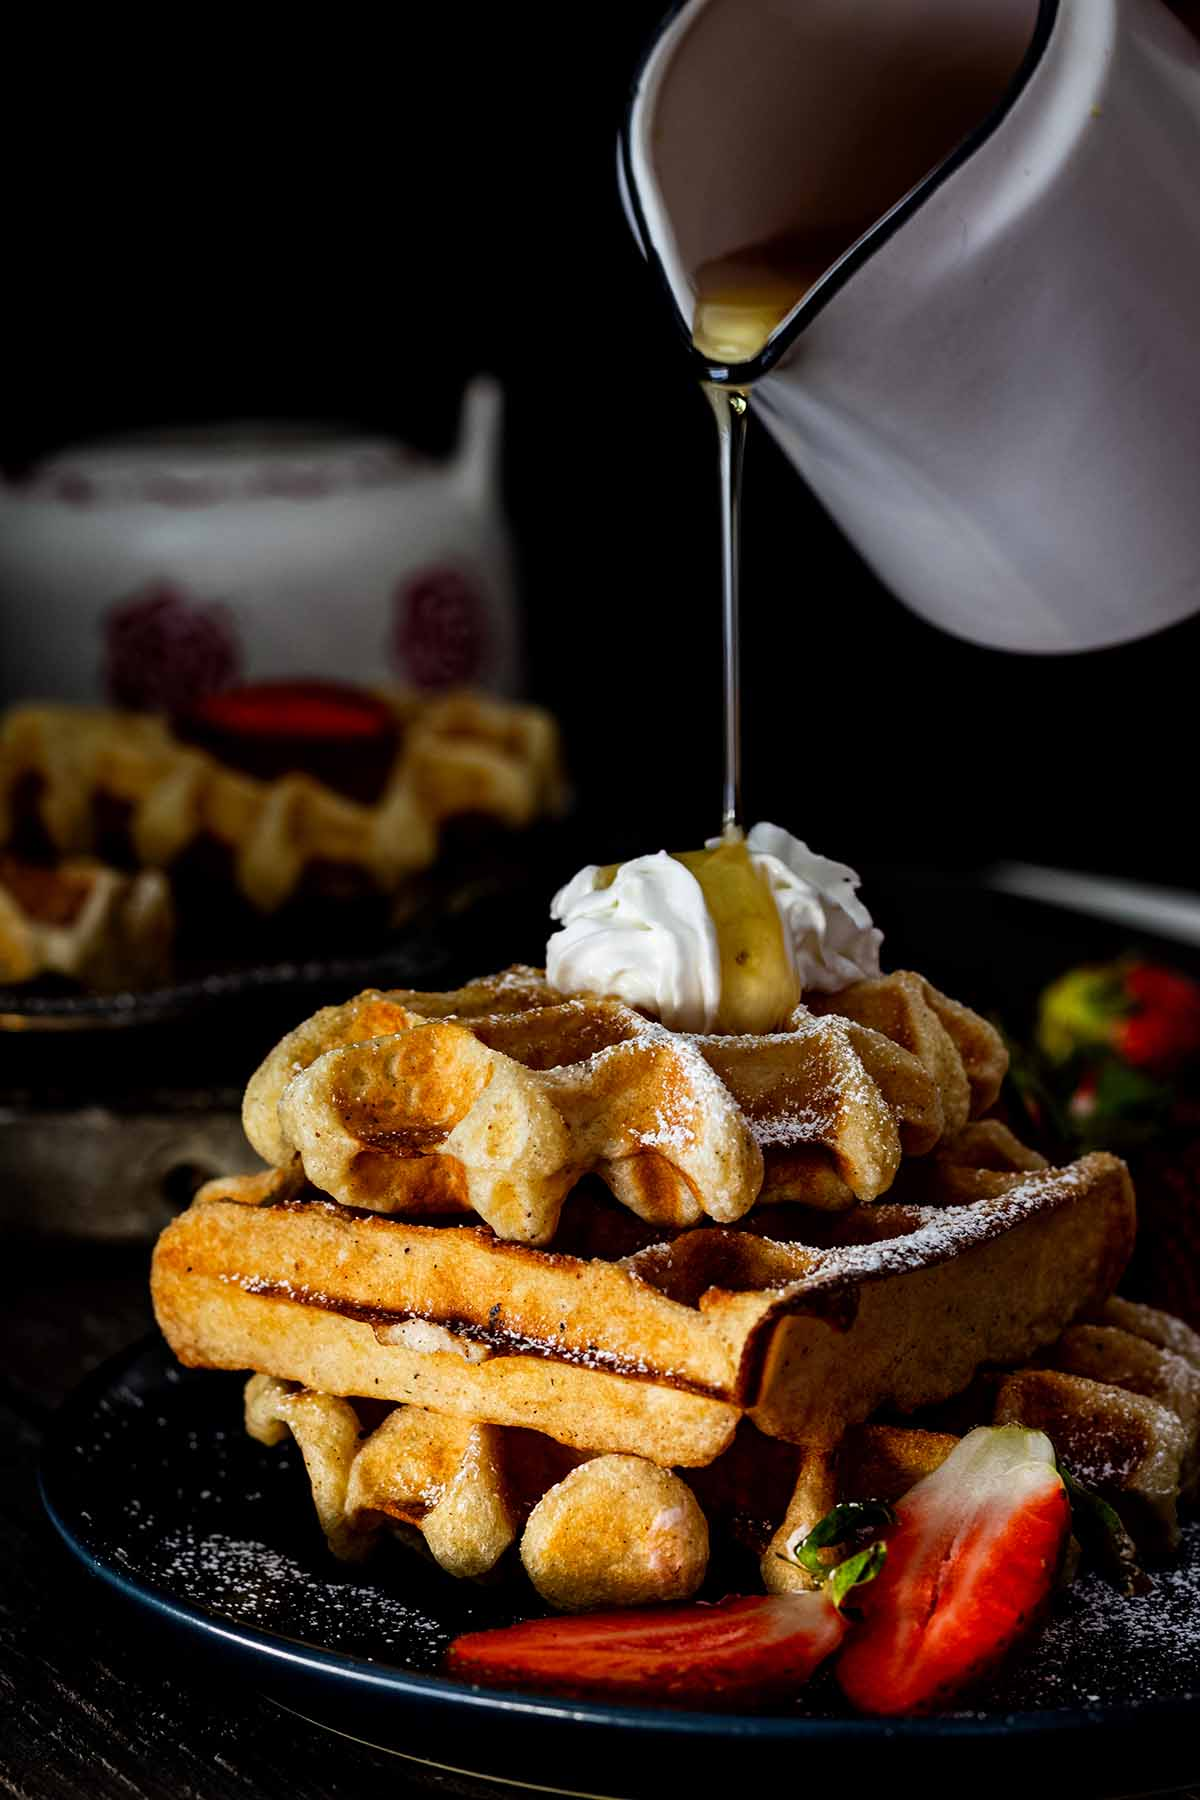 Syrup being poured onto a stack of buttermilk Belgian waffles